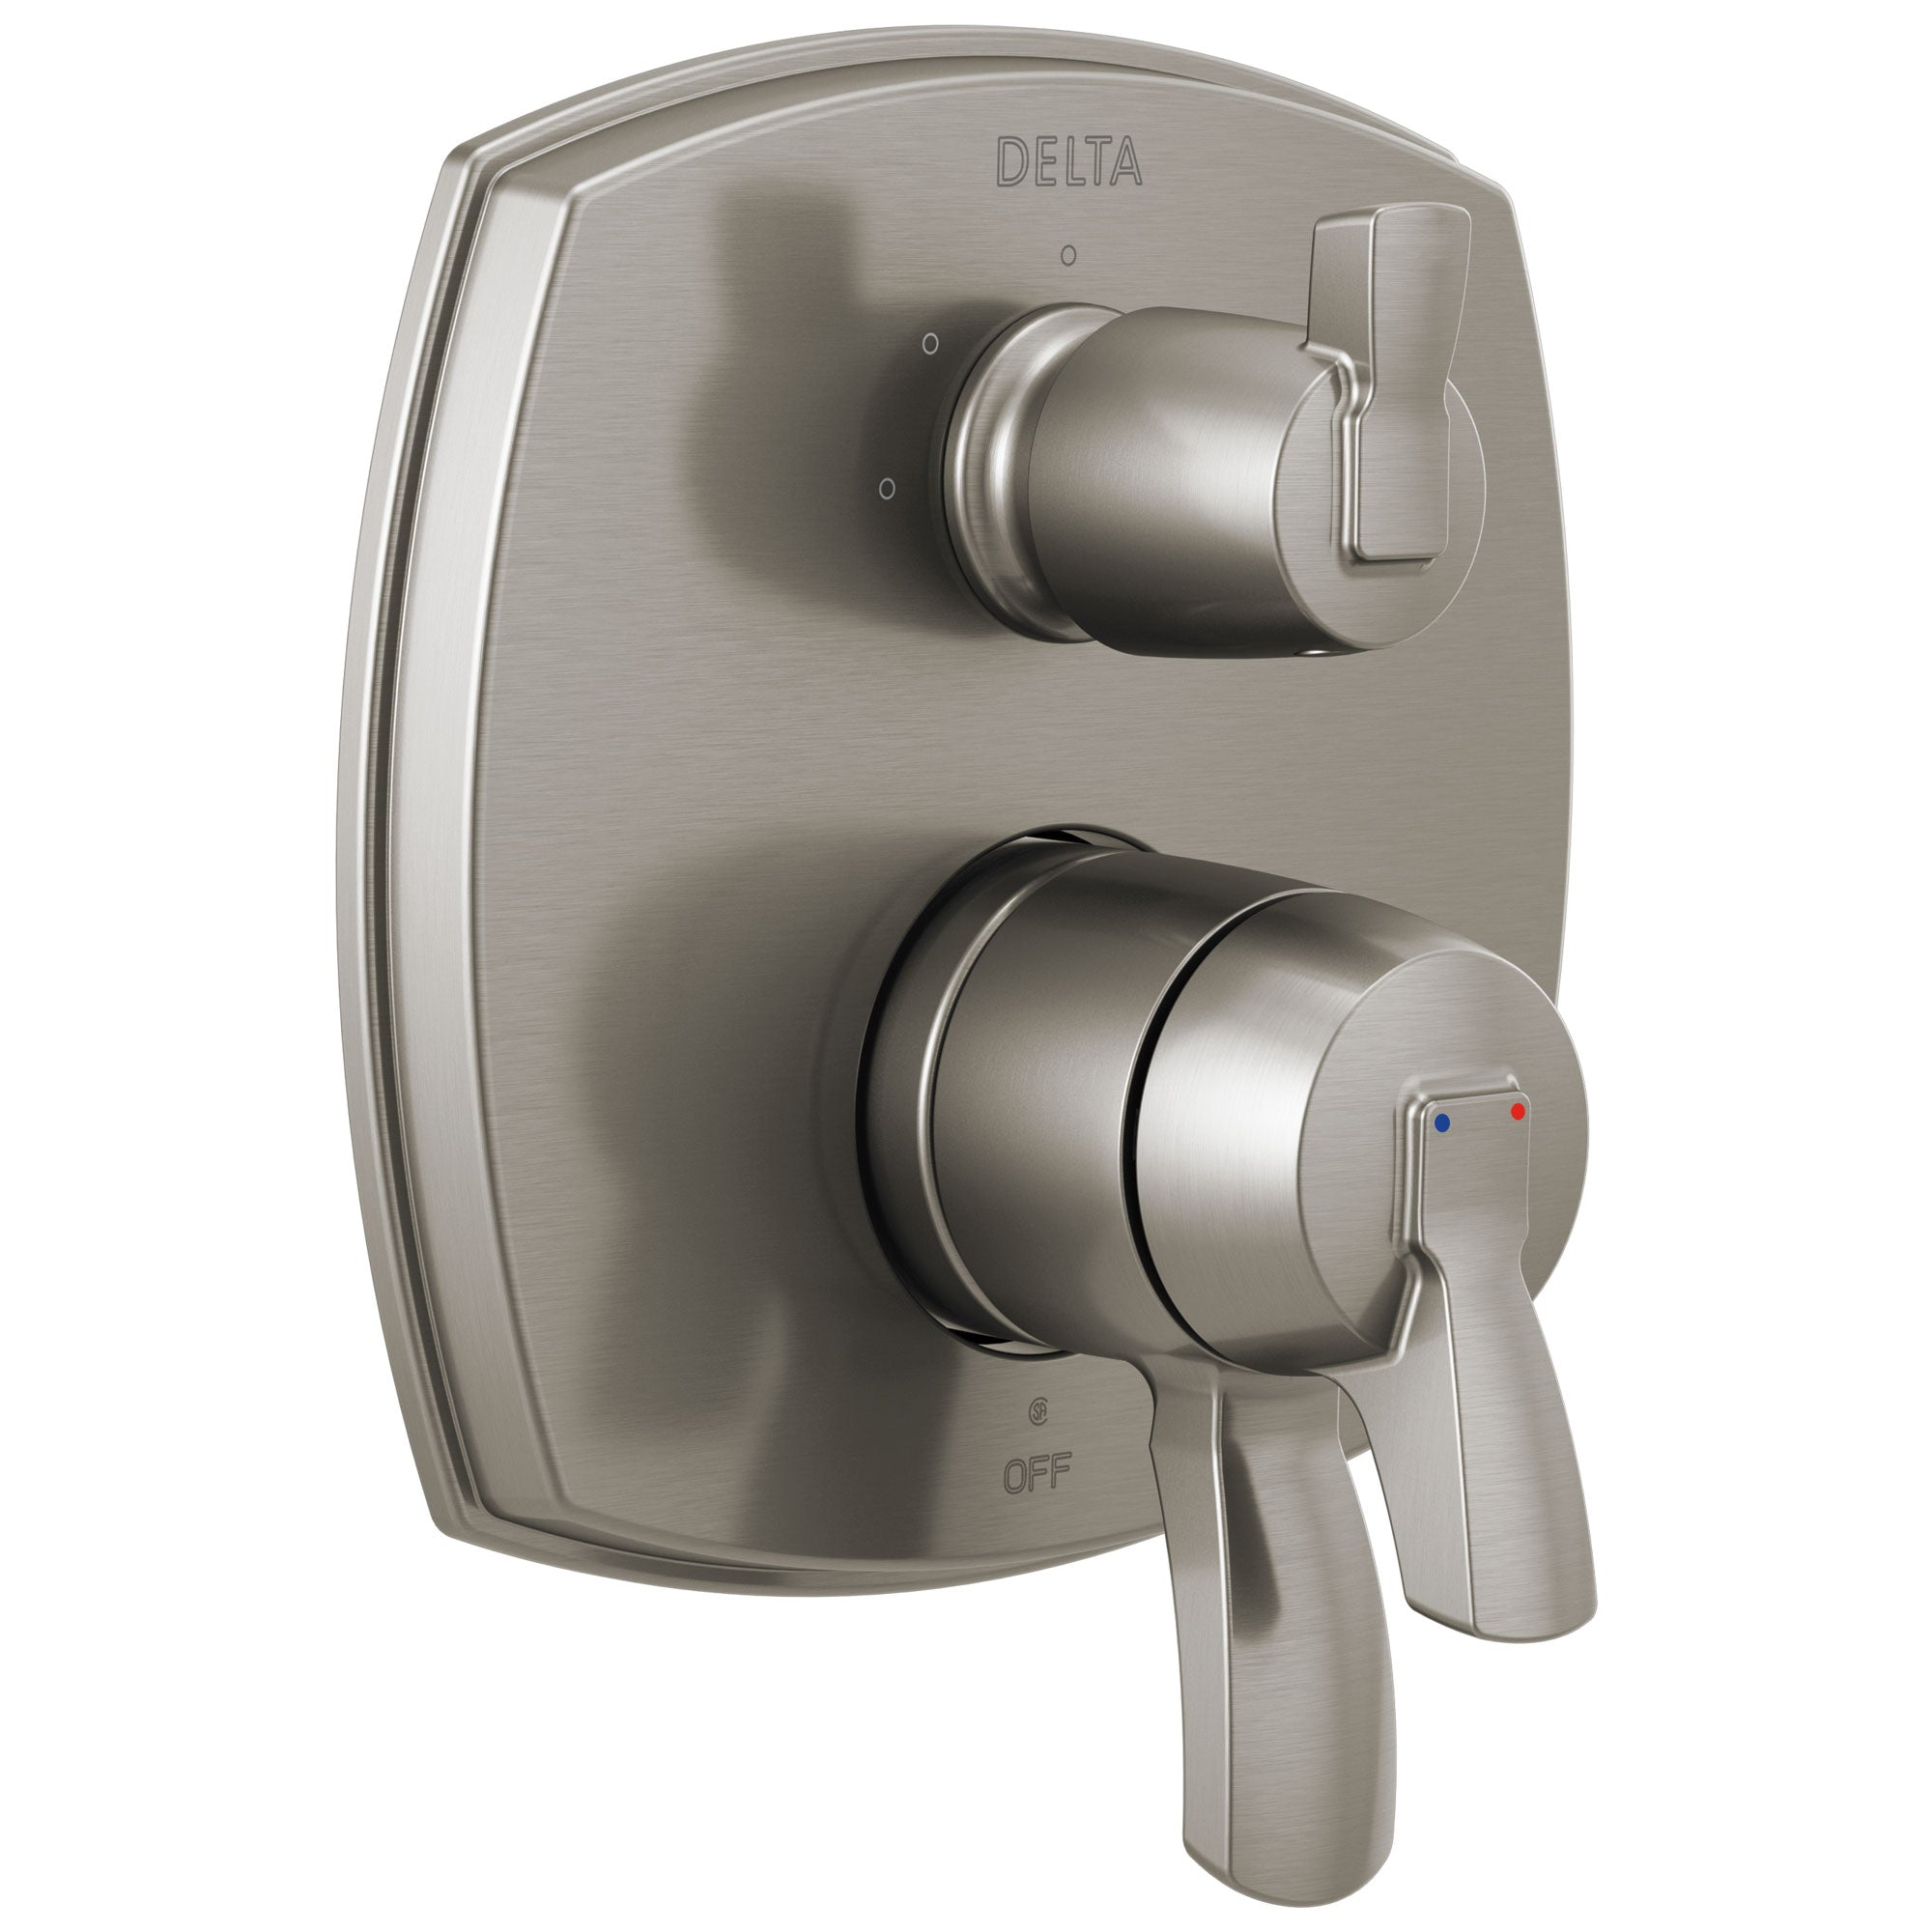 Delta Stryke Stainless Steel Finish 17 Series Integrated 3-Function Lever Handle Diverter Shower System Control Includes Valve and Handles D3723V